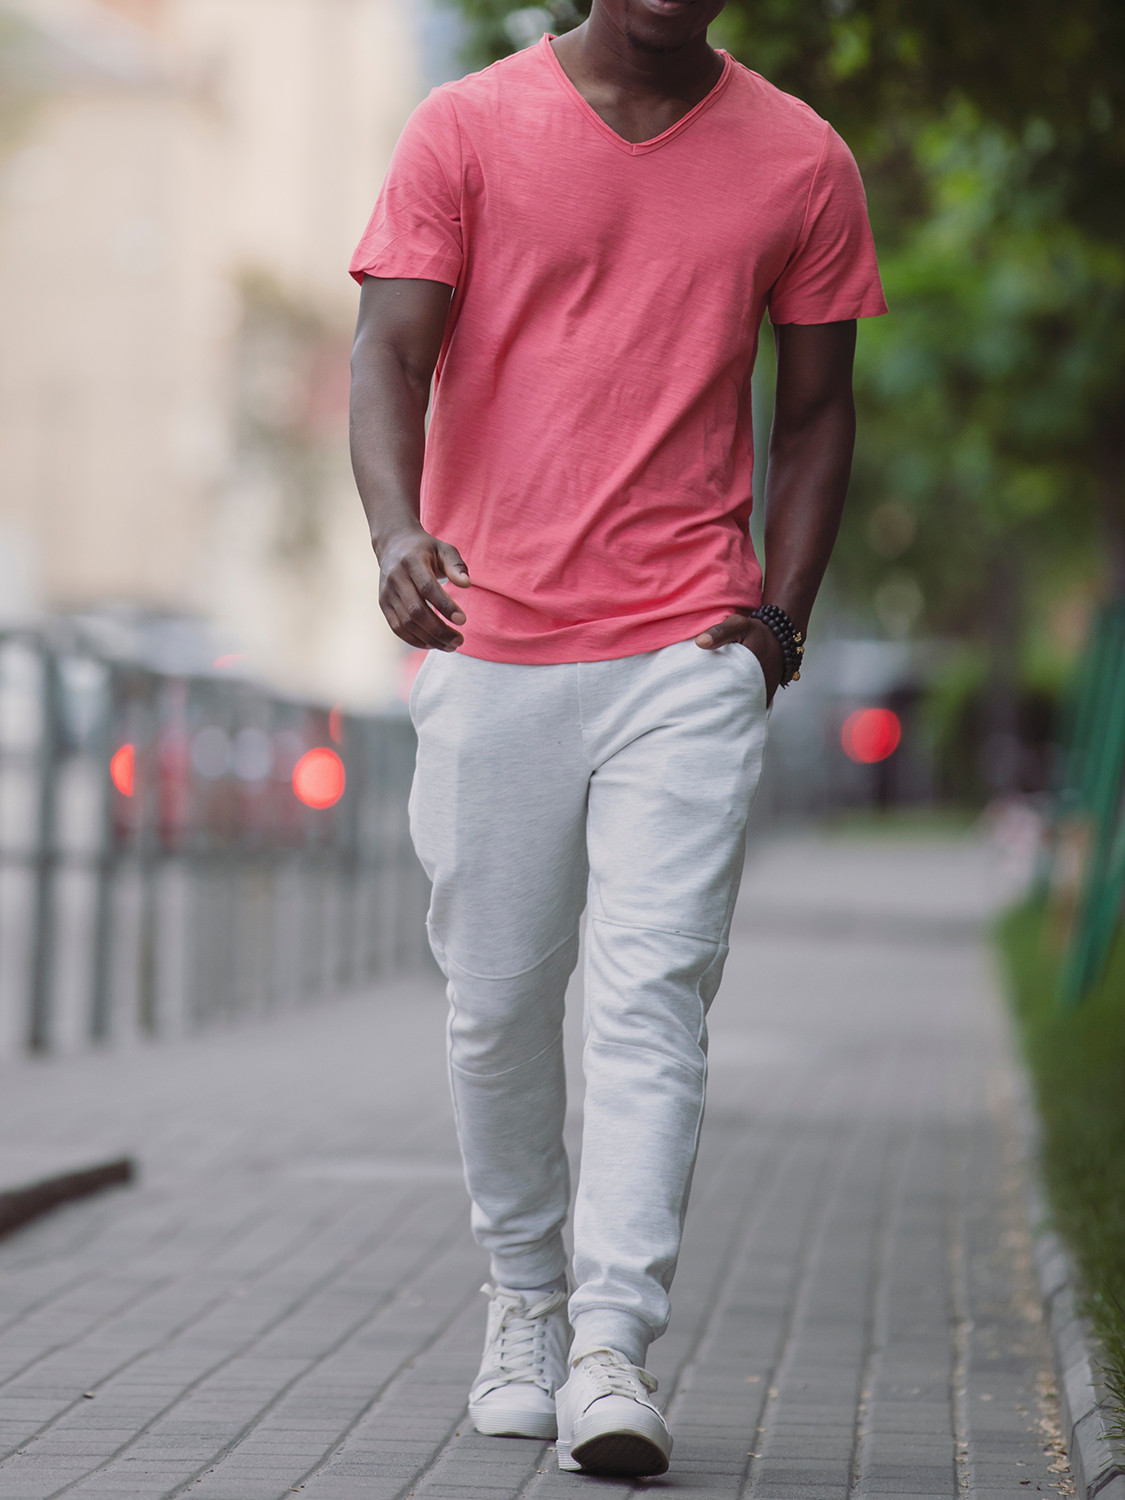 Men's outfit idea for 2021 with pink plain crew neck t-shirt, white sneakers. Suitable for spring and fall.